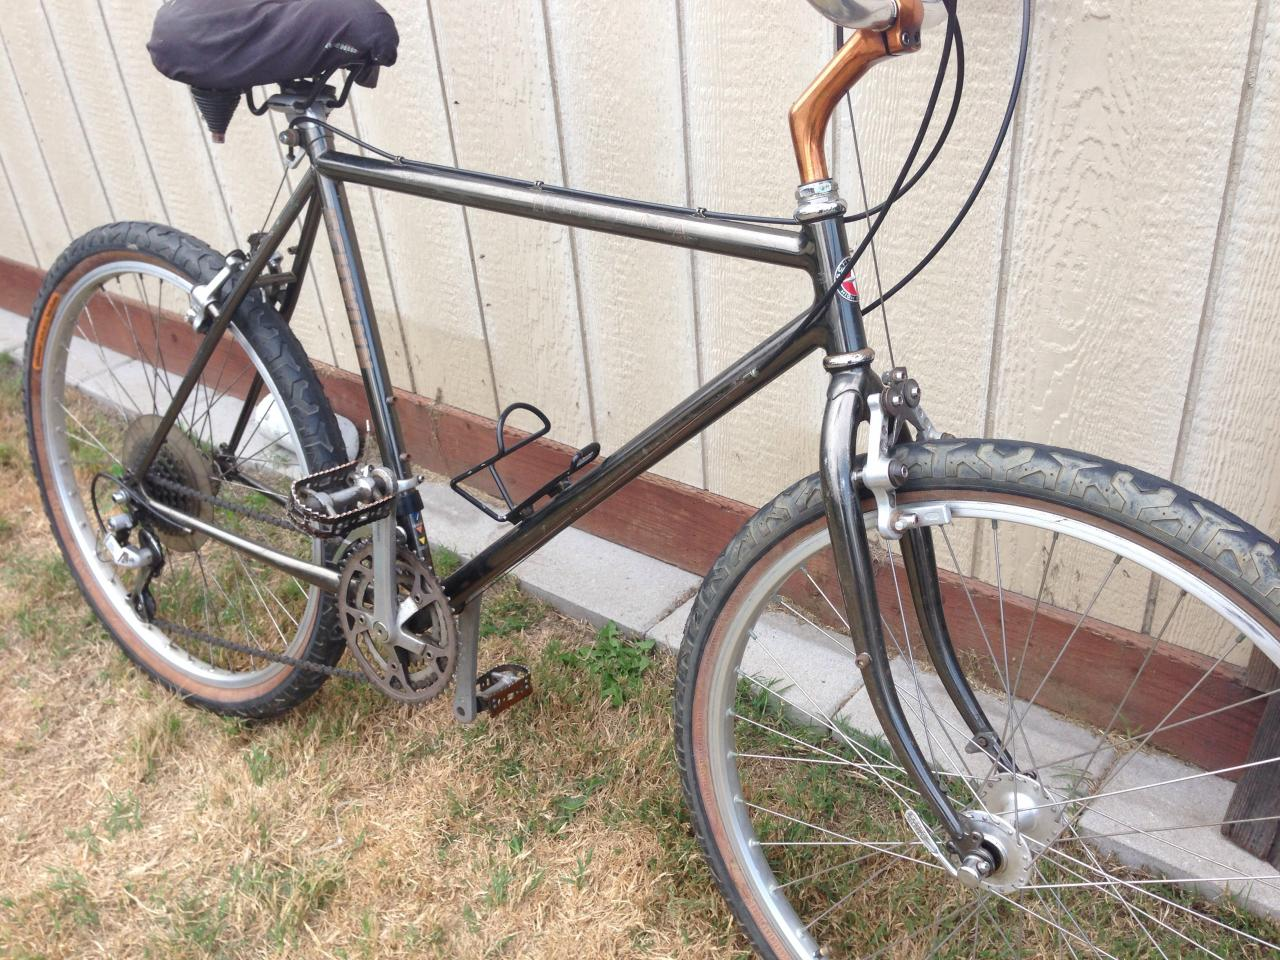 bce141fad1e 87 Schwinn high Sierra | The Classic and Antique Bicycle Exchange